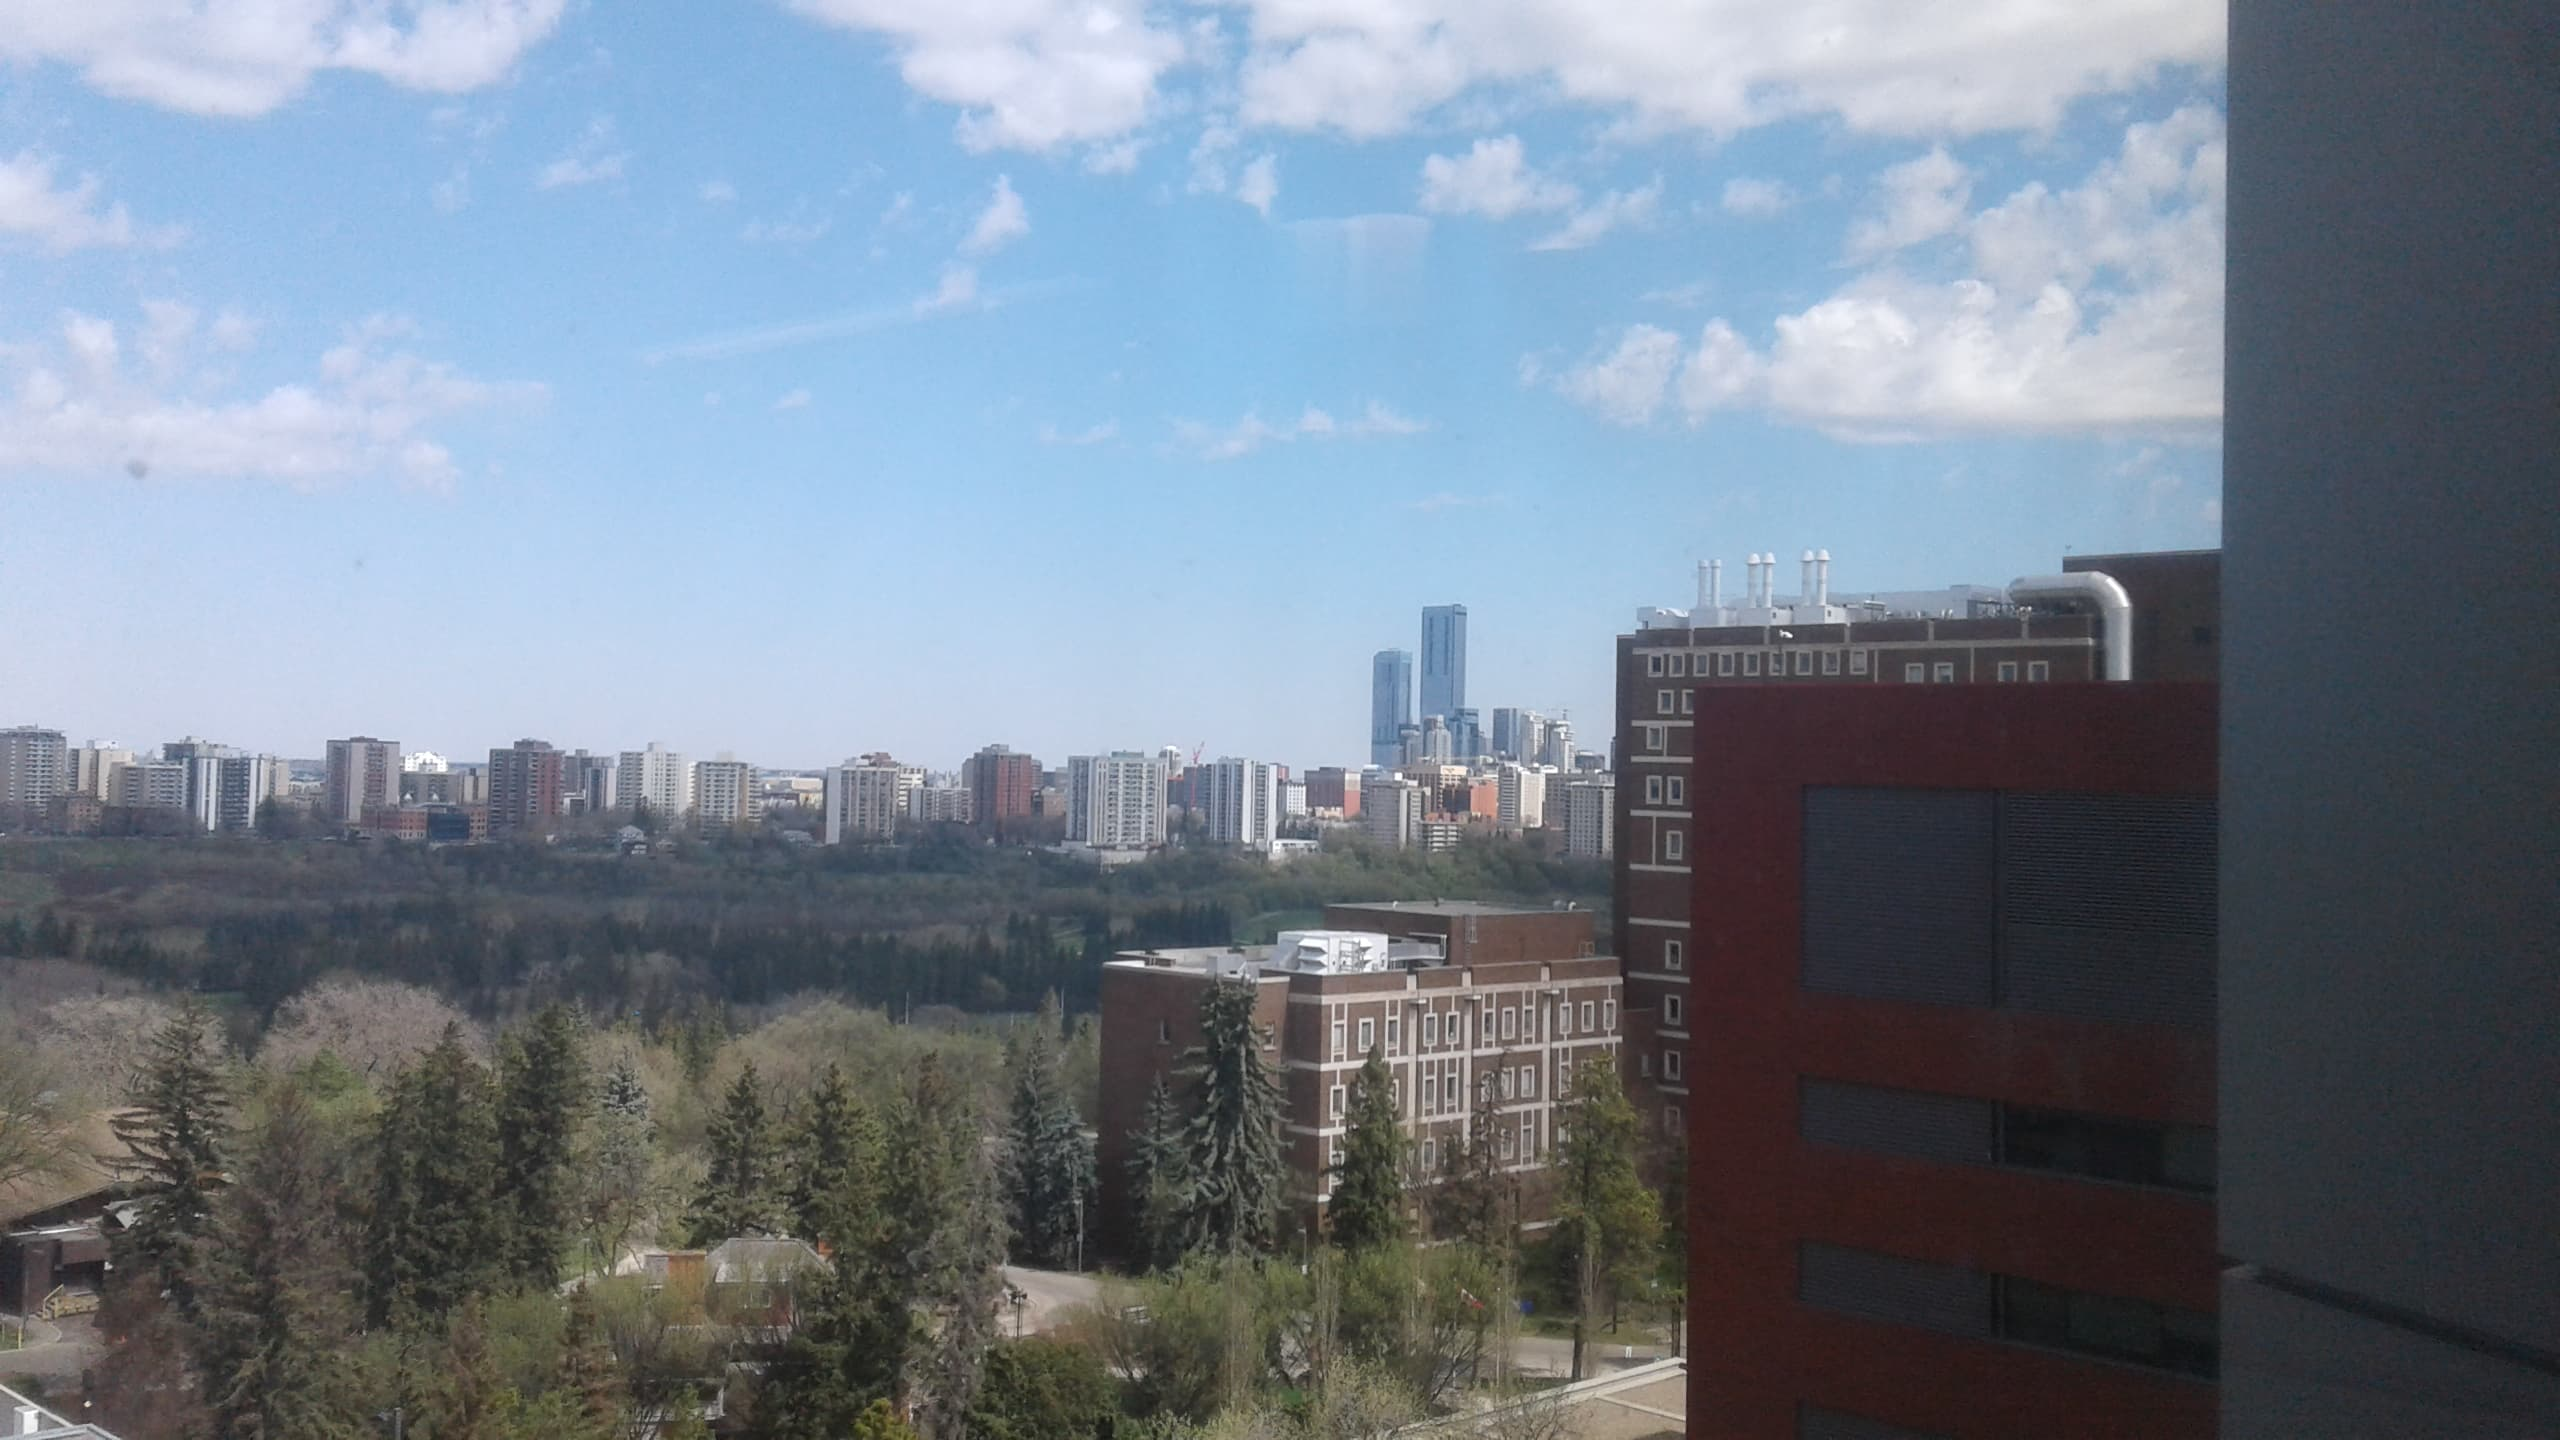 skyline view of alberta